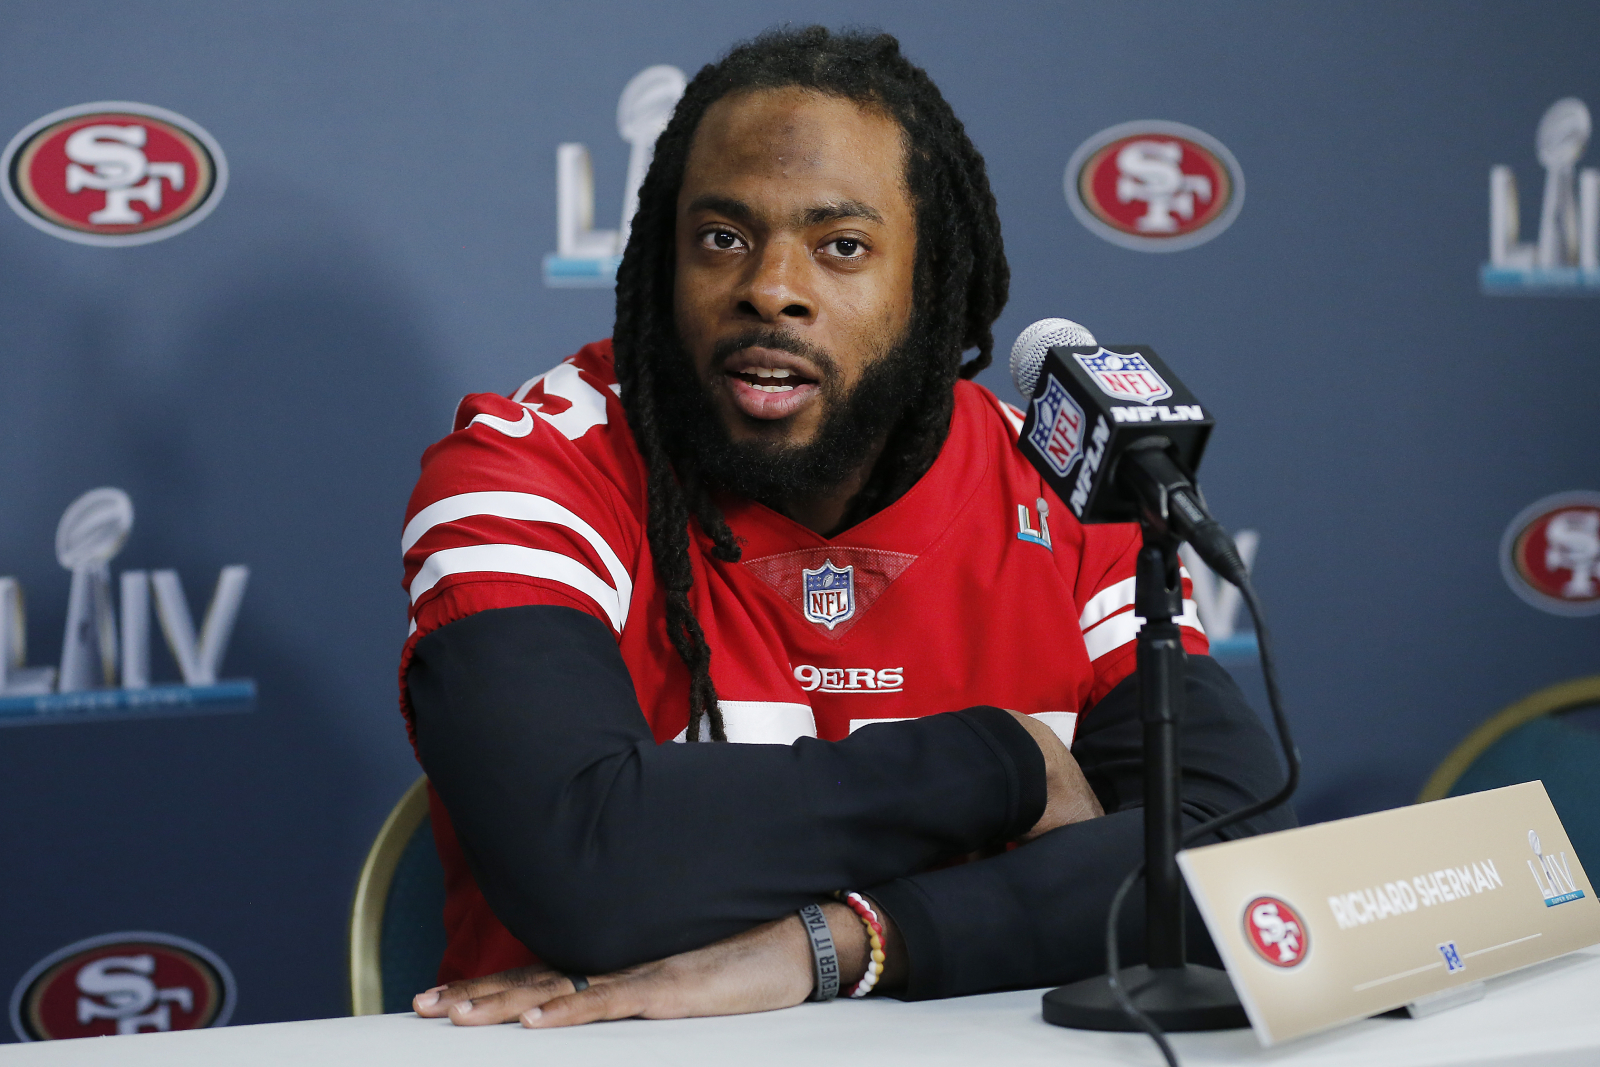 Richard Sherman doesn't know if he will be on the San Francisco 49ers next year, but he has already made enough money to become a team owner.